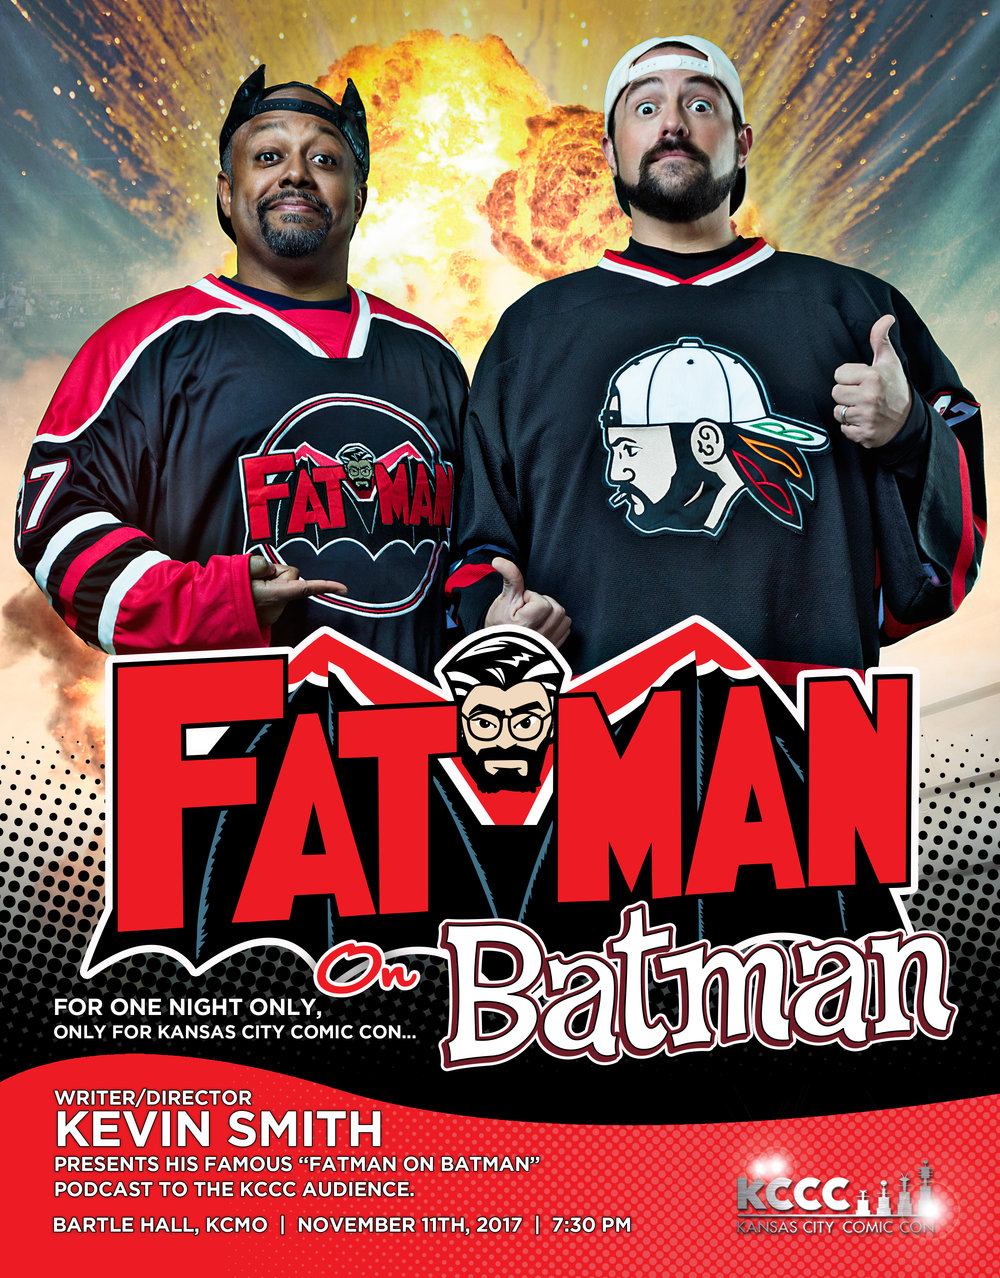 Kevin Smith and Marc Bernardin present Fatman on Batman at Kansas City Comic Con. Click image for tickets!